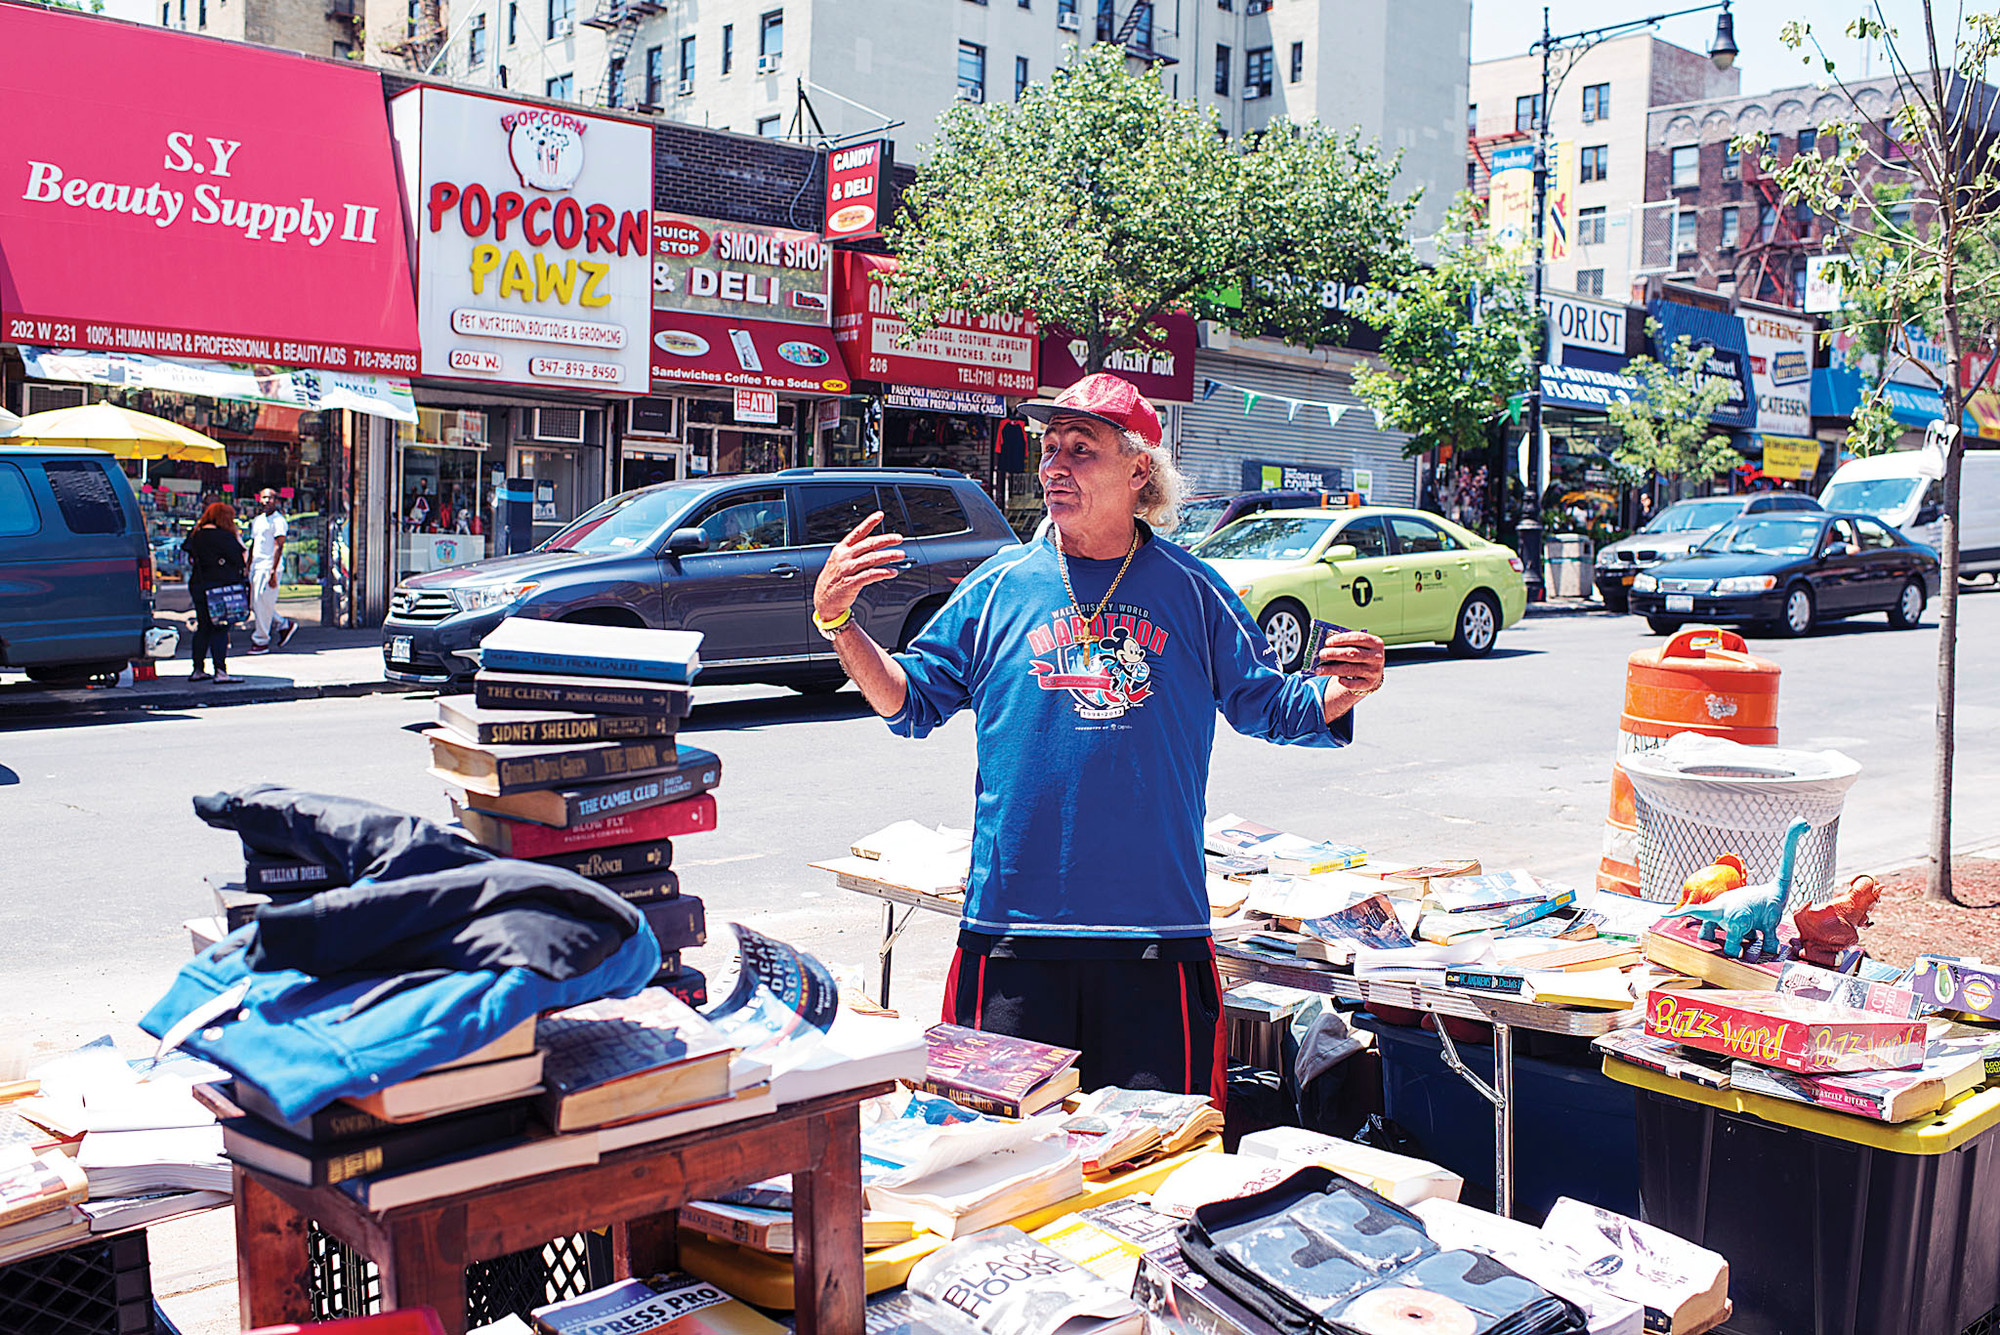 Vendor Peter Diego, 49, next to his book stand on West 231st Street.